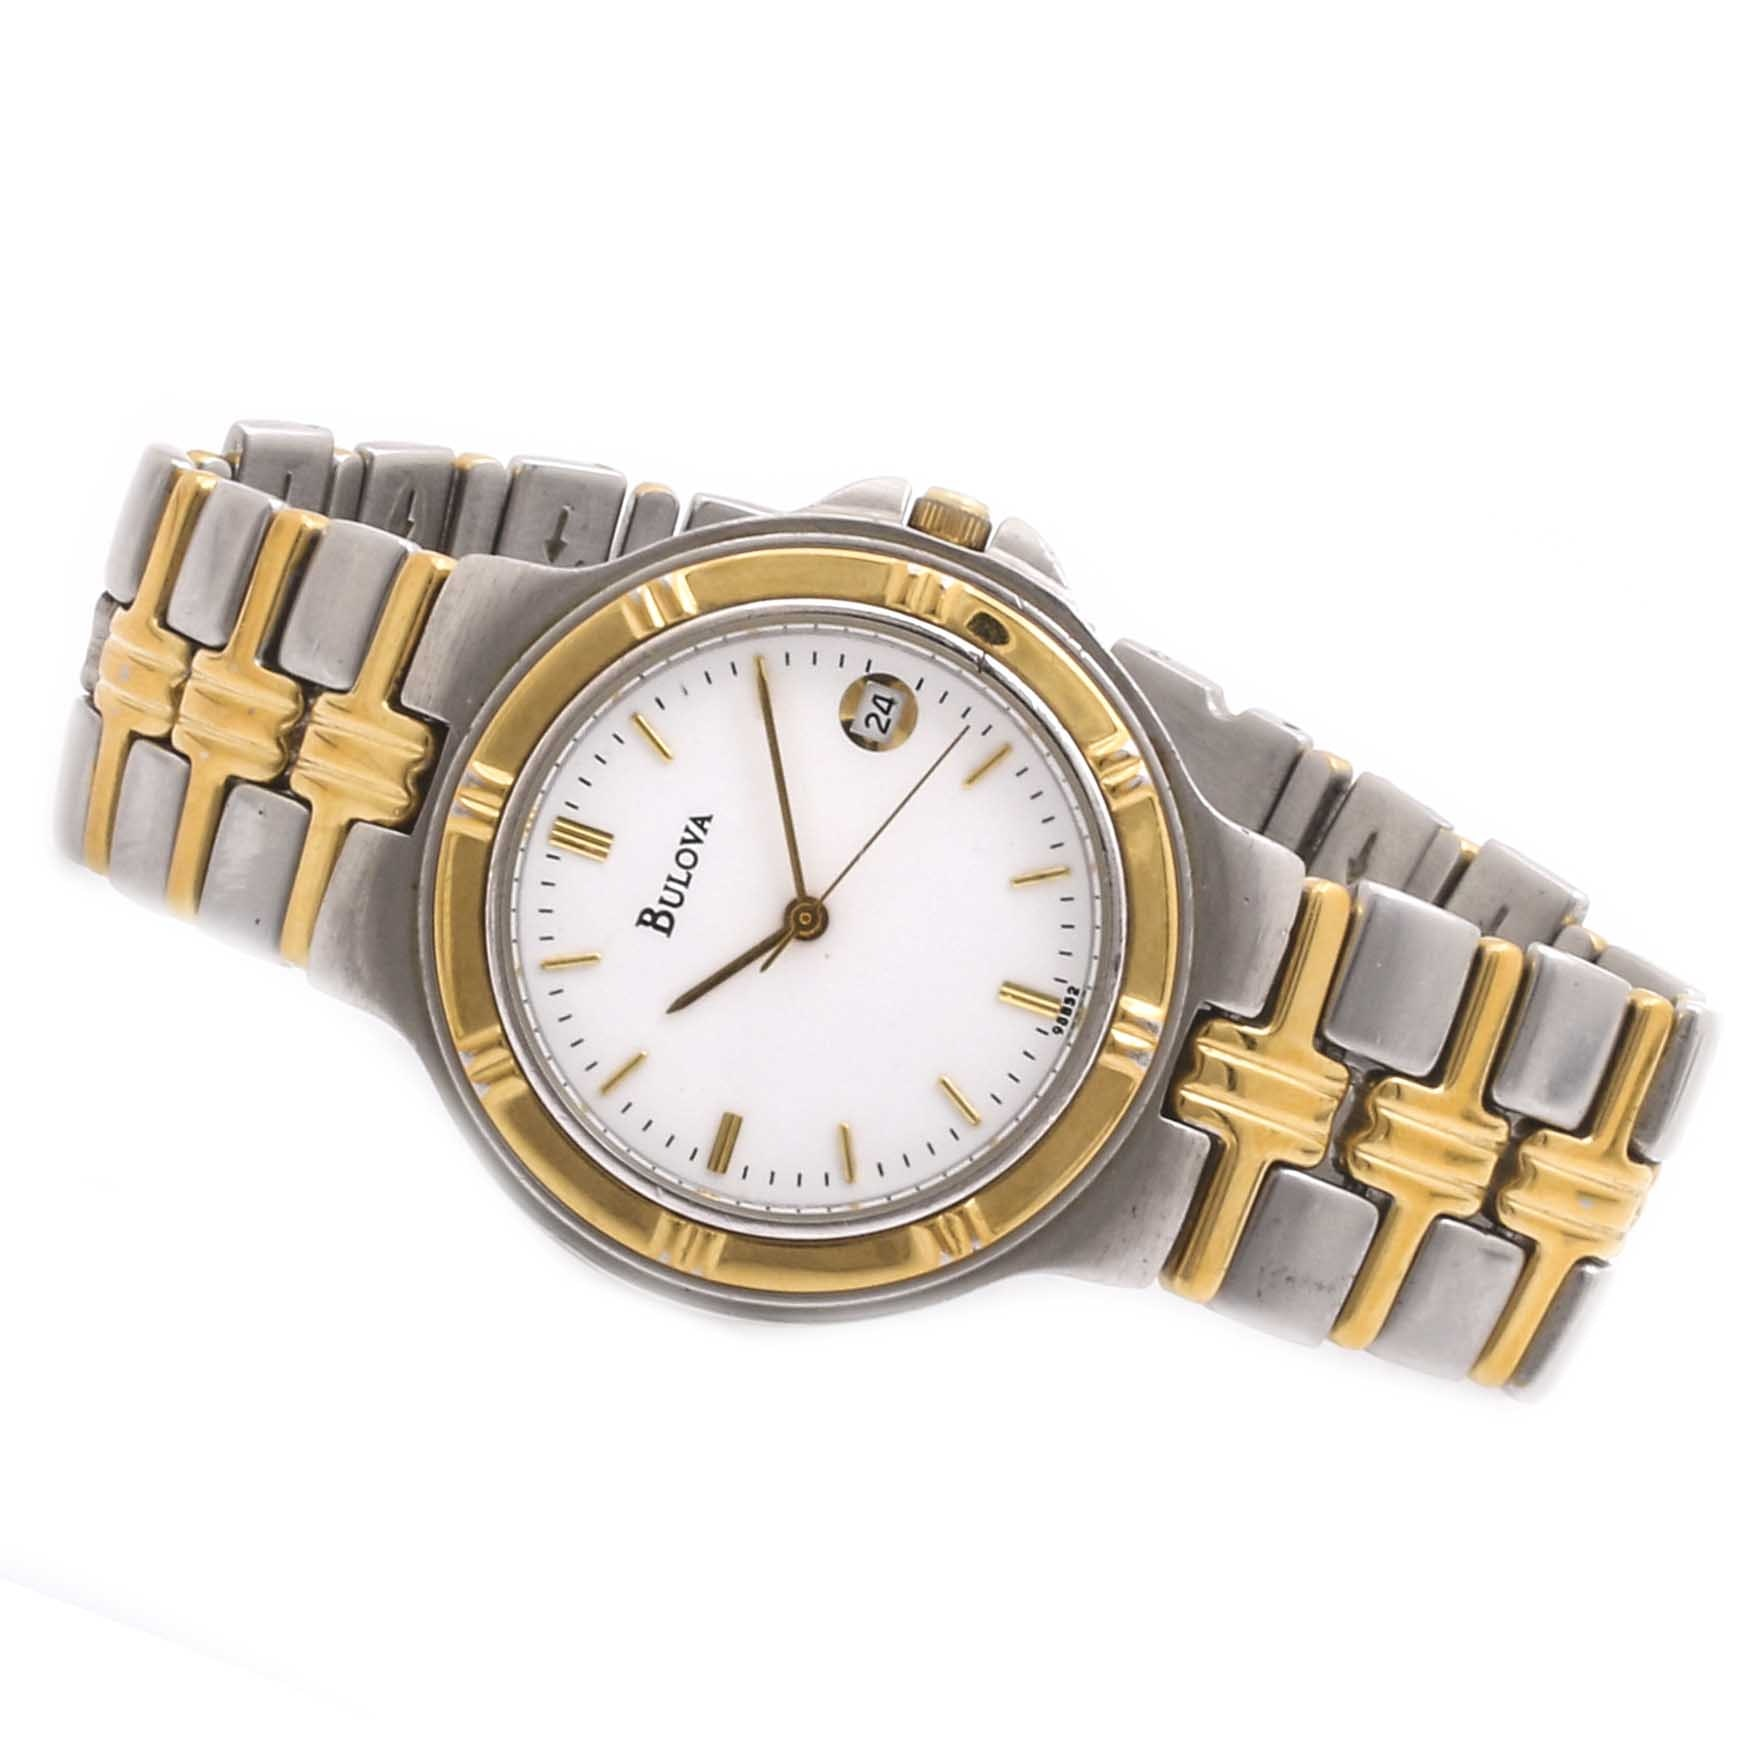 Bulova Two-Tone Stainless Steel Wristwatch